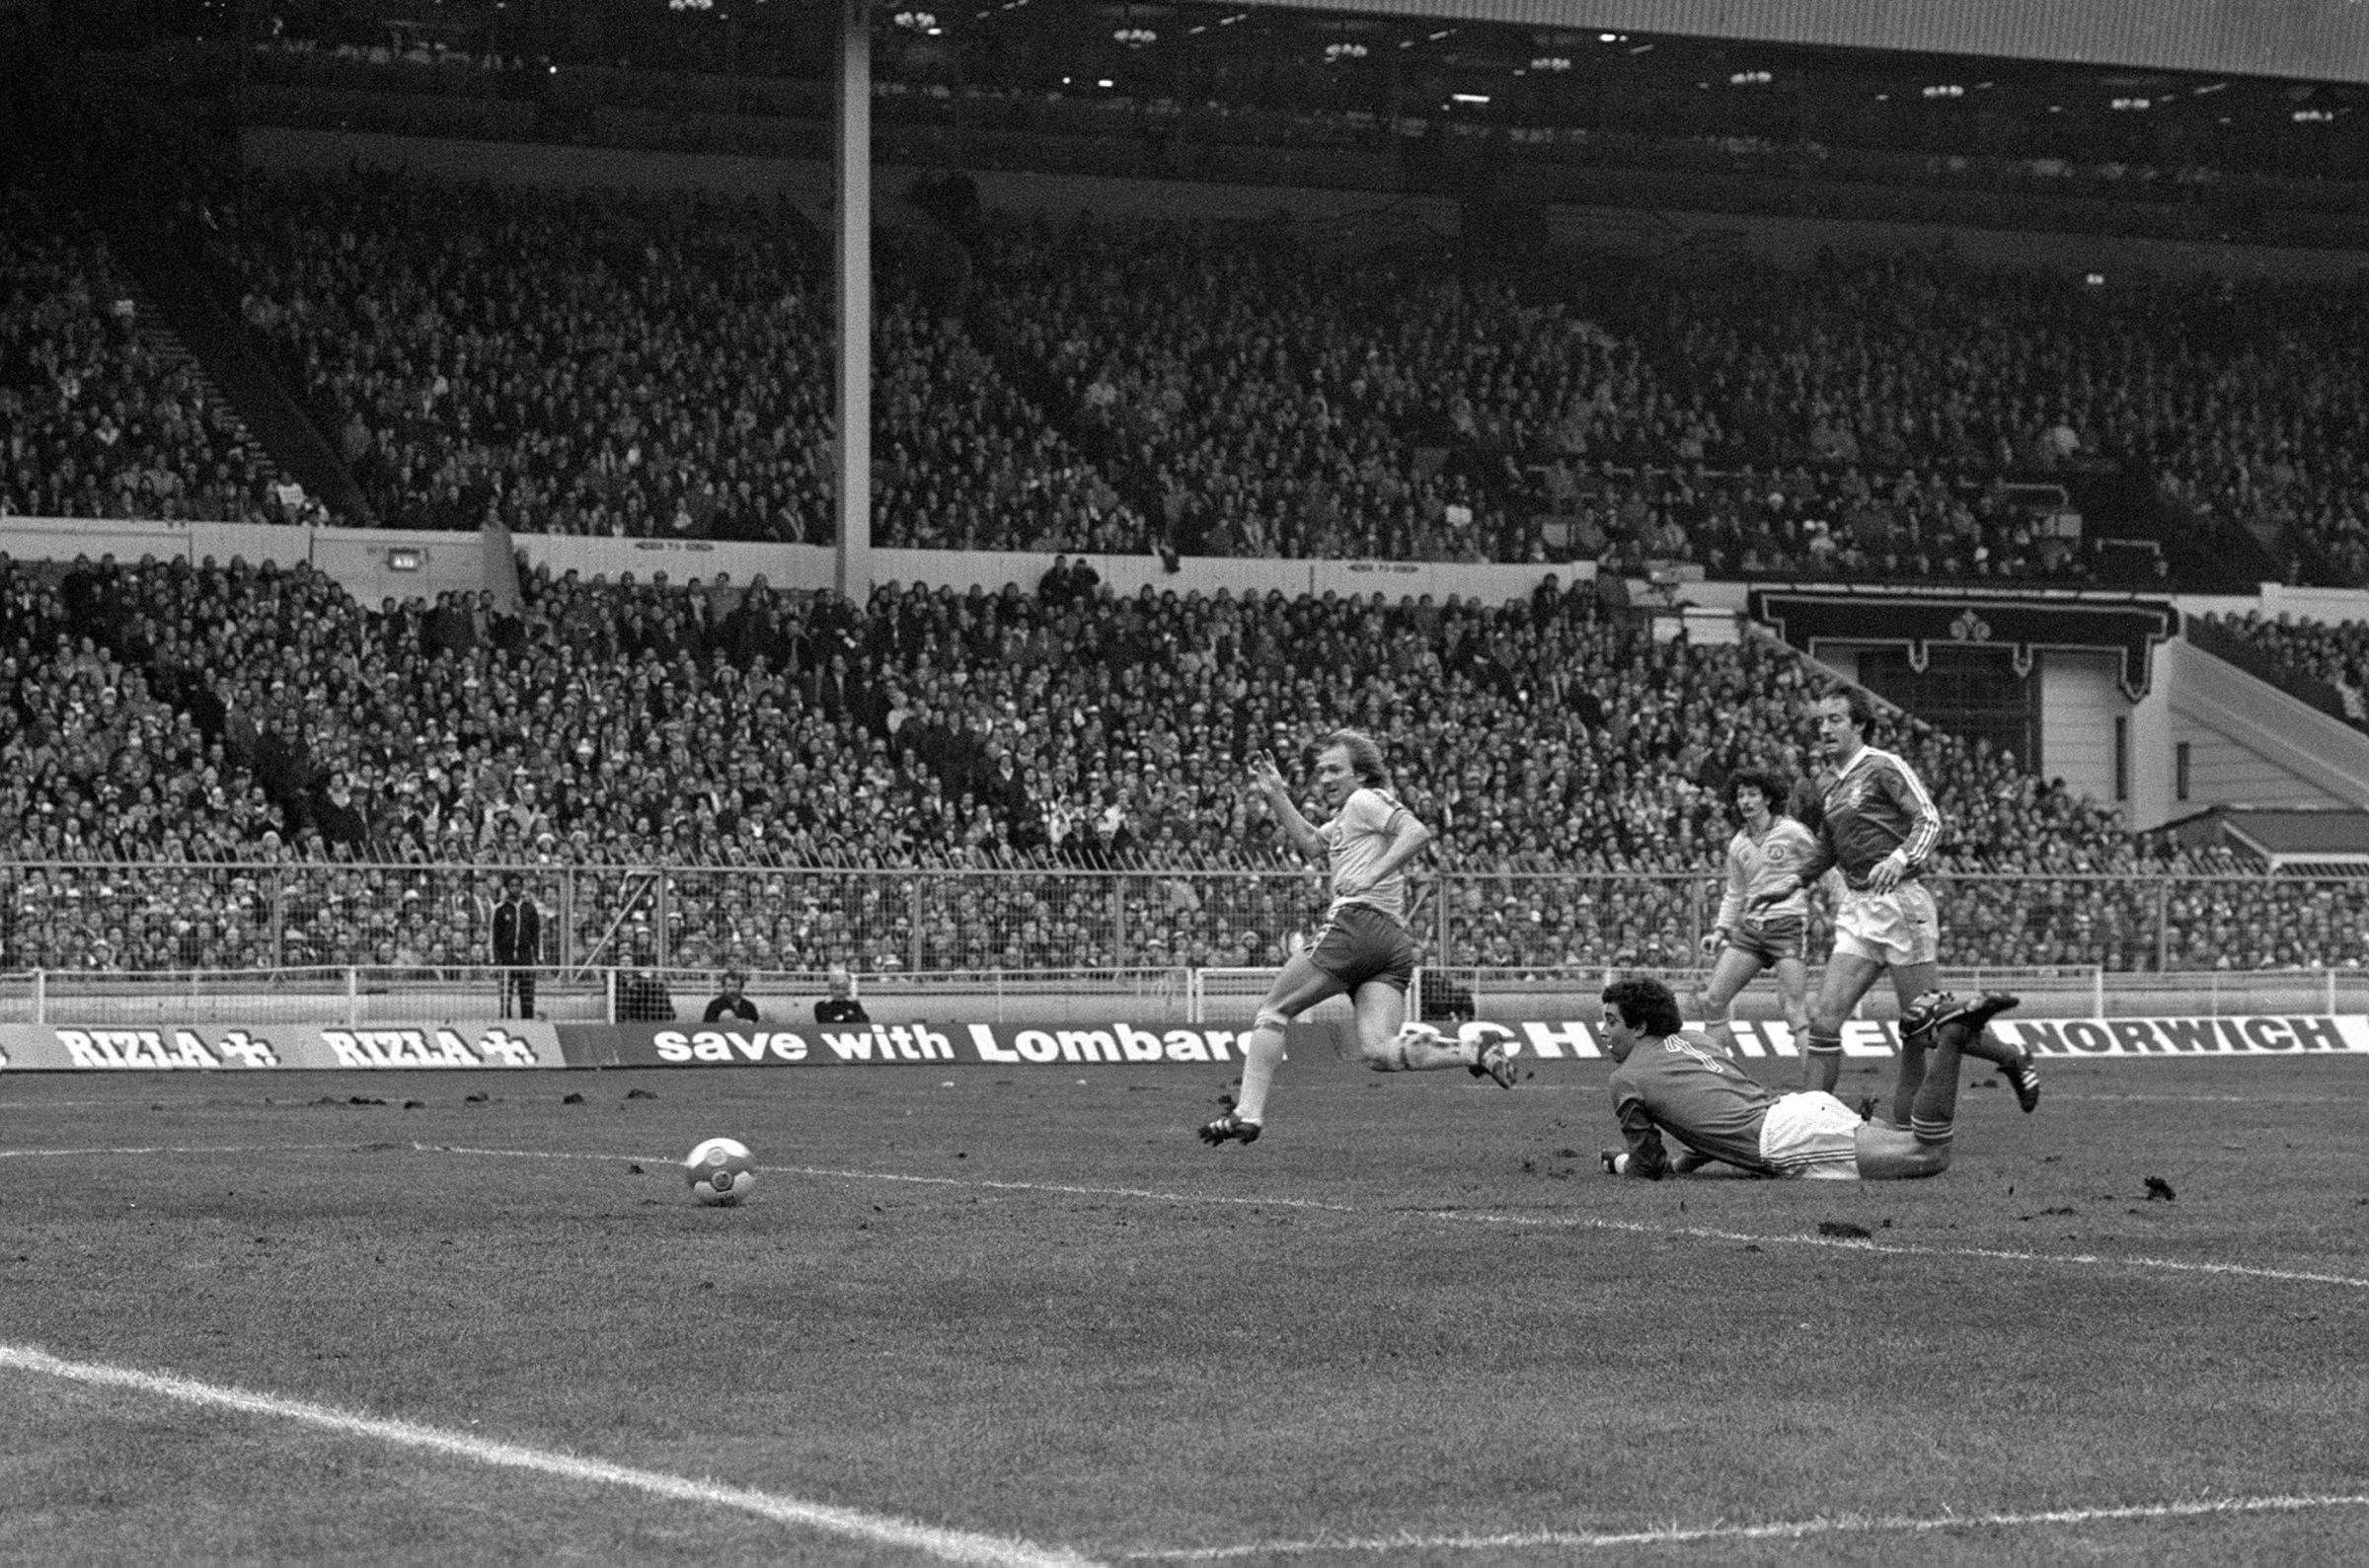 David Peach scores the opening goal in the 1979 League Cup final against Nottingham Forest, who went on to beat Saints 3-2 on this weekend 40 years ago